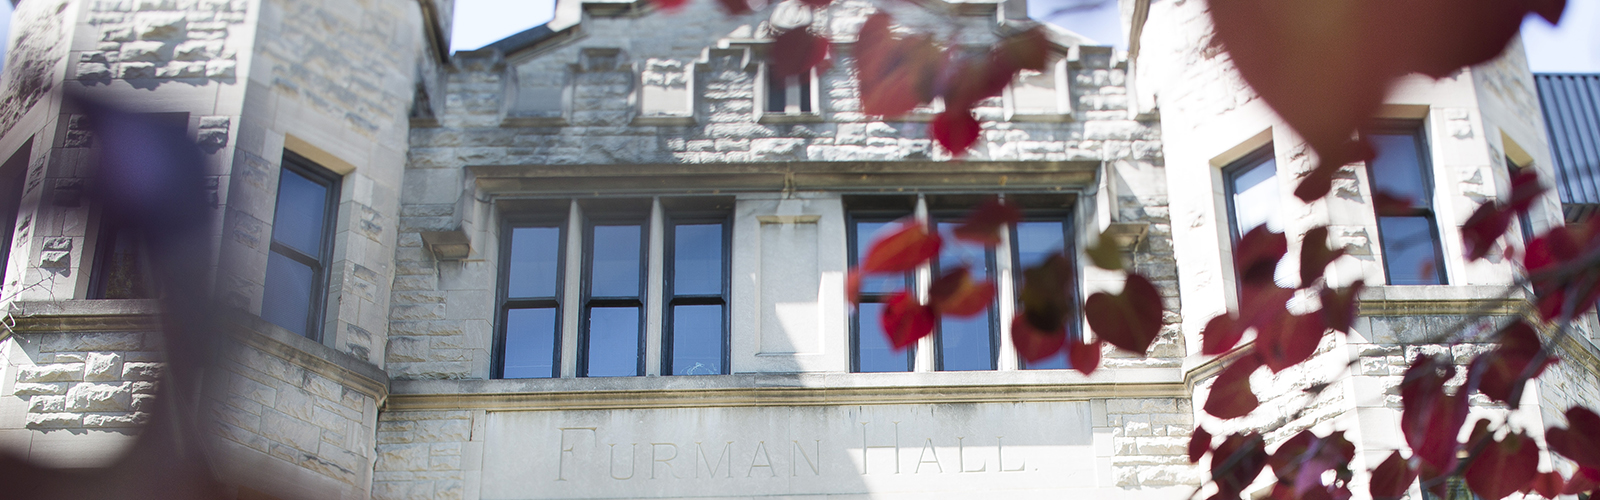 exterior of Furman Hall, a light gray stone building, with red leaves in the foreround